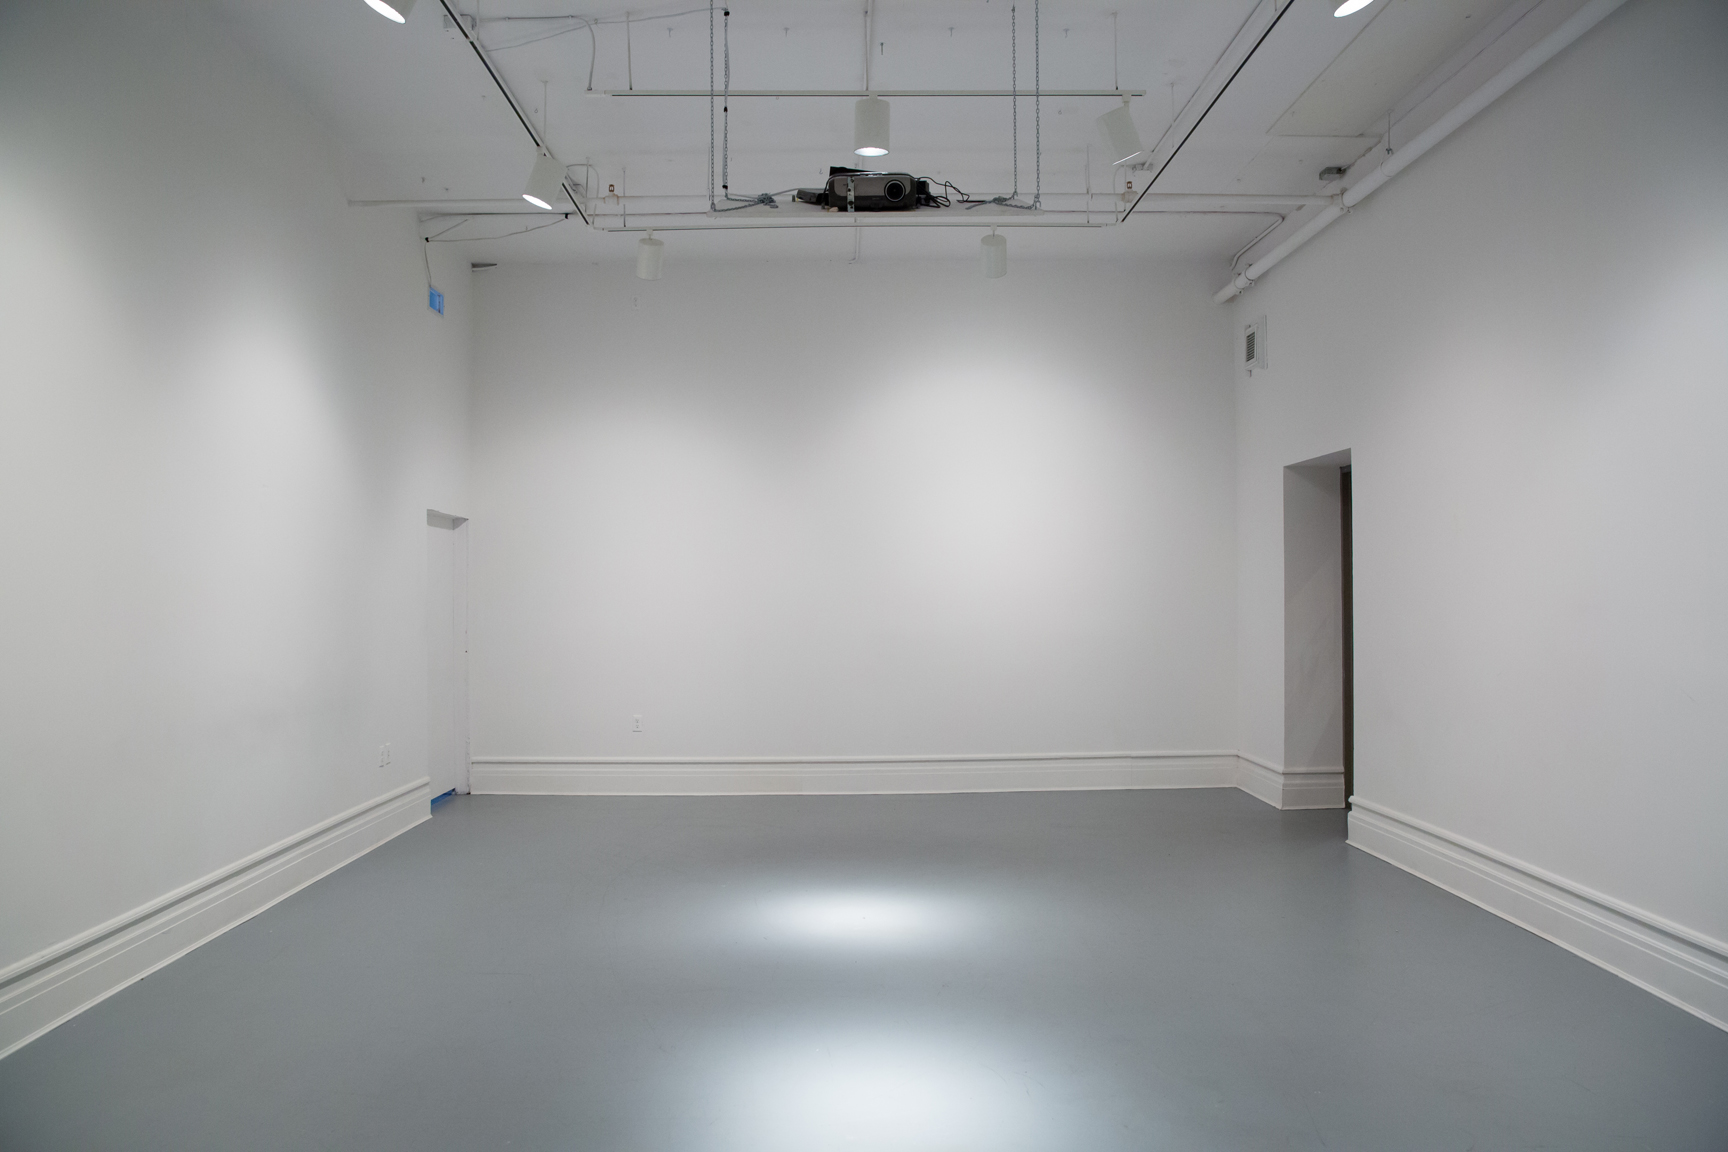 La galerie titulaire : vide  The main gallery space : empty